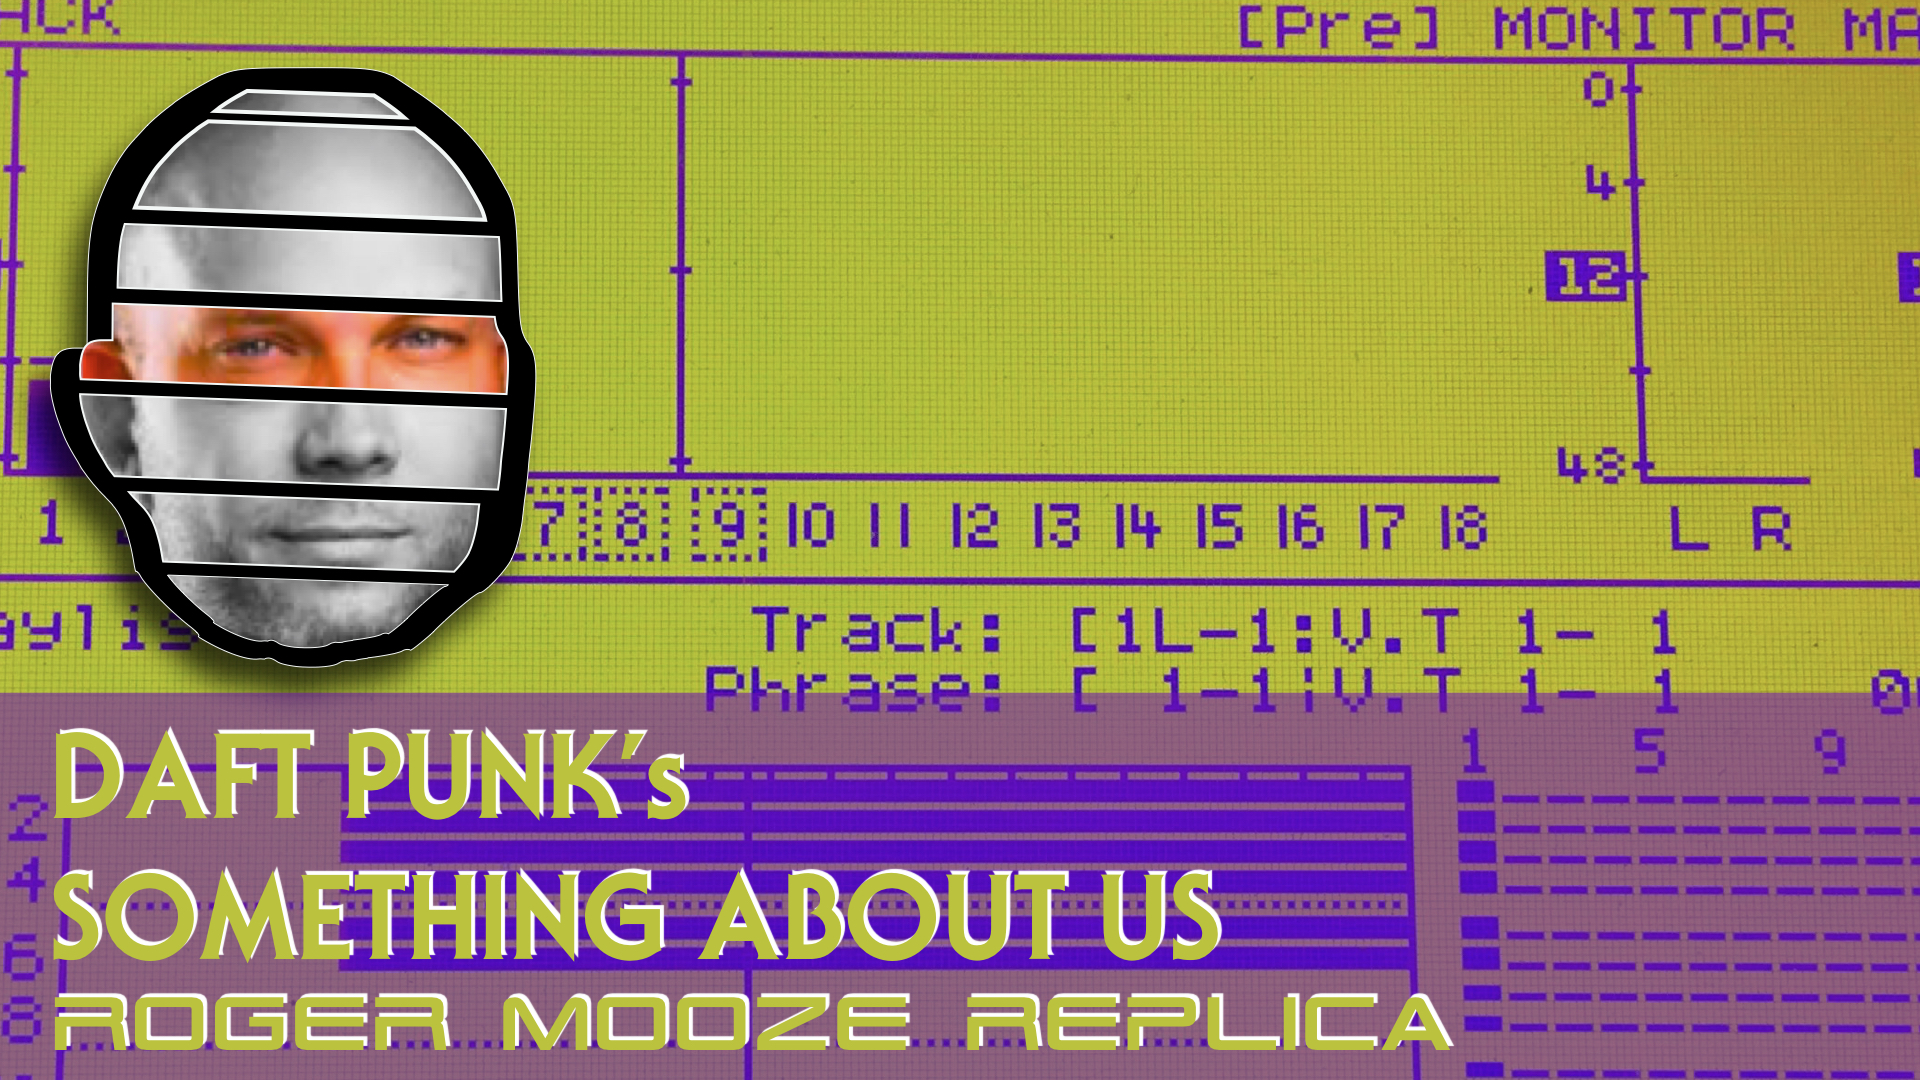 Daft Punk's Something About Us - Roger Mooze Replica